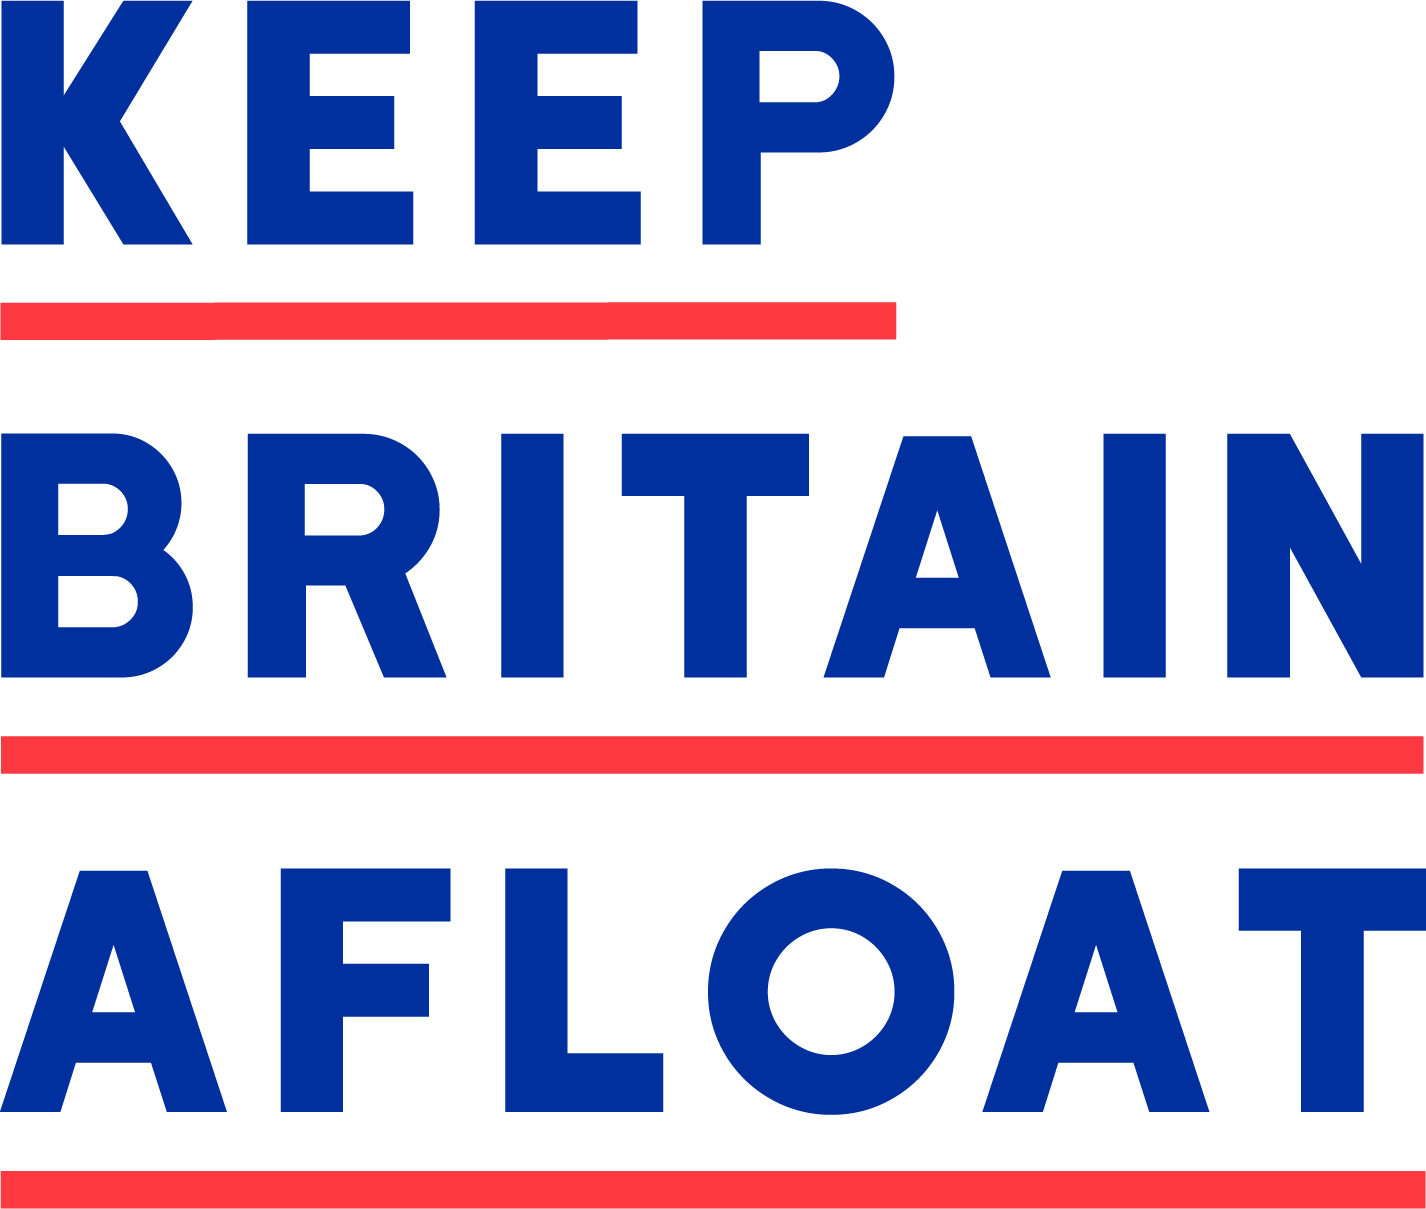 KEEP BRITAIN AFLOAT